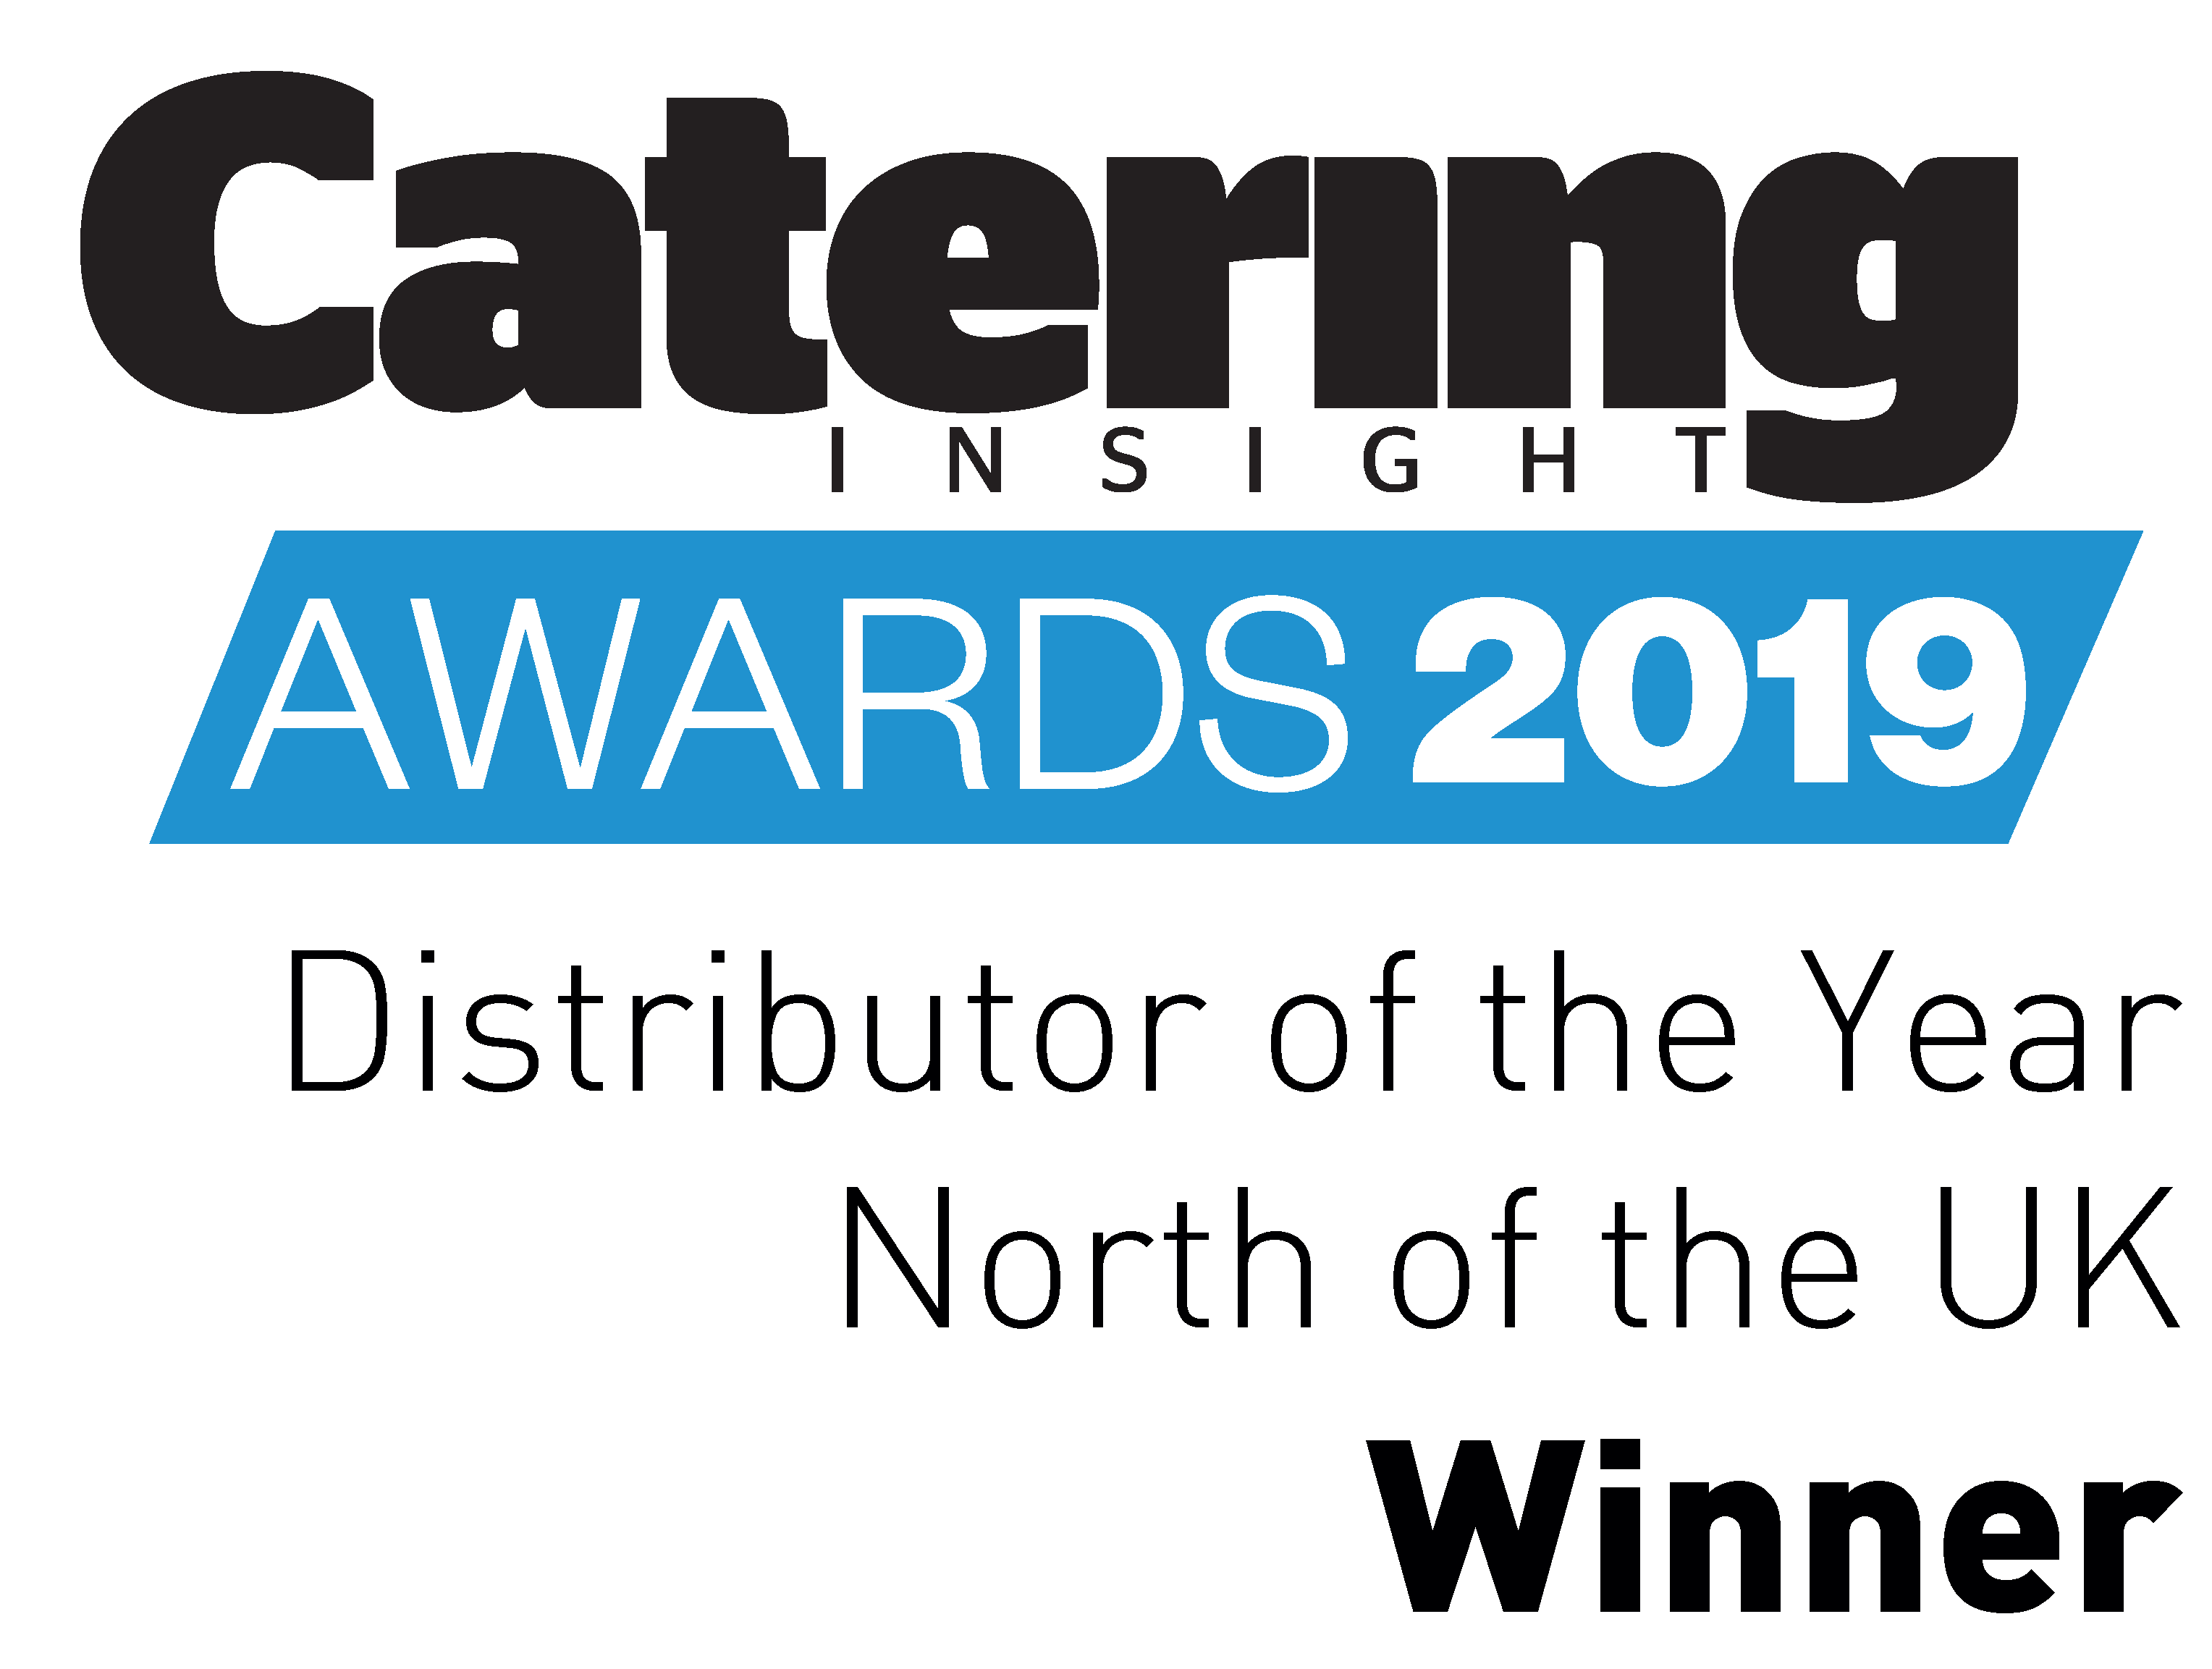 Catering Insight Awards 2019 Distributor of the Year North of England Winner